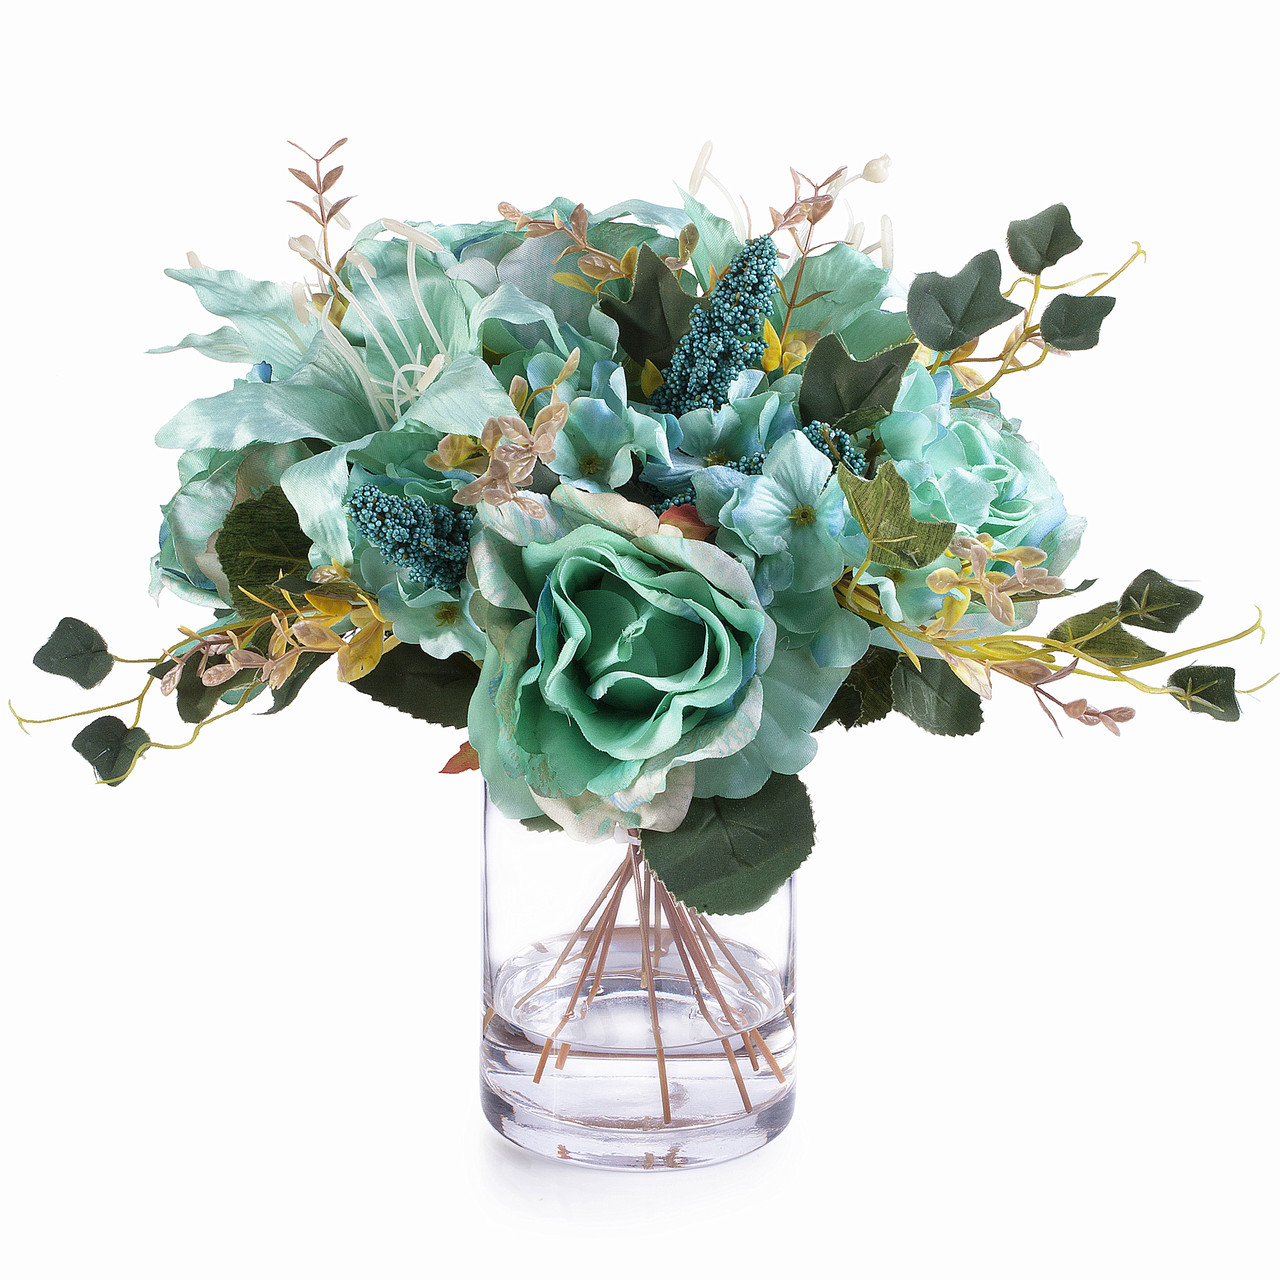 Aqua Mixed Rose Lily And Hydrangea Silk Flower Arrangement In Clear Glass Vase With Faux Water Enova Home